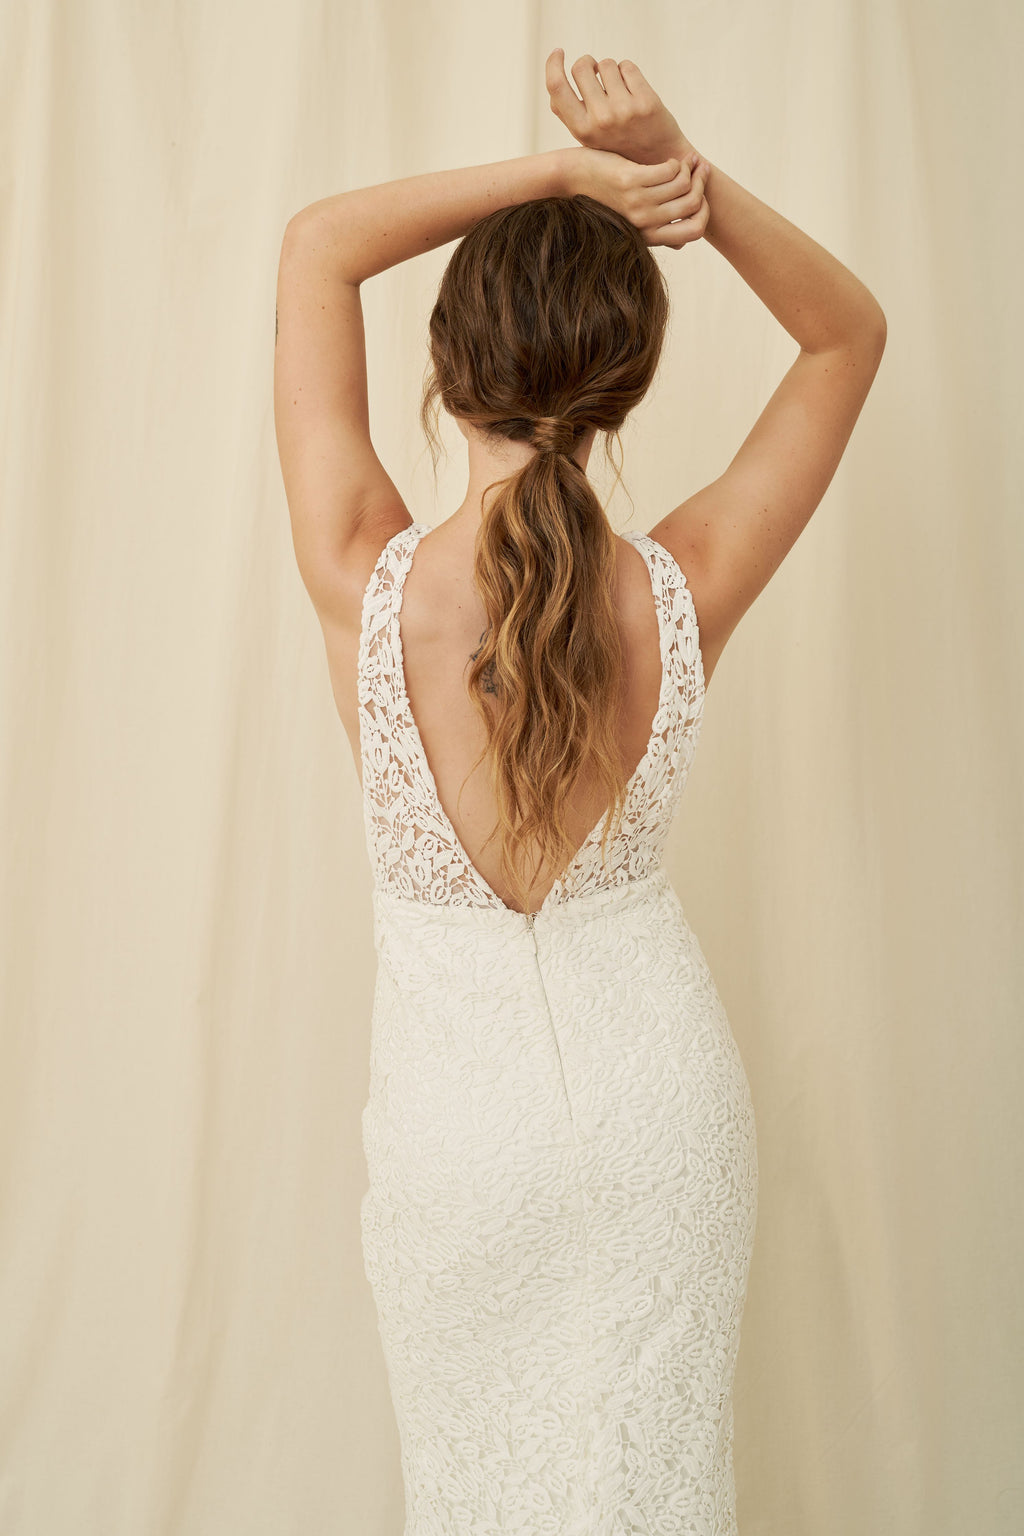 A low-cut mermaid wedding gown with unique lace and a long train